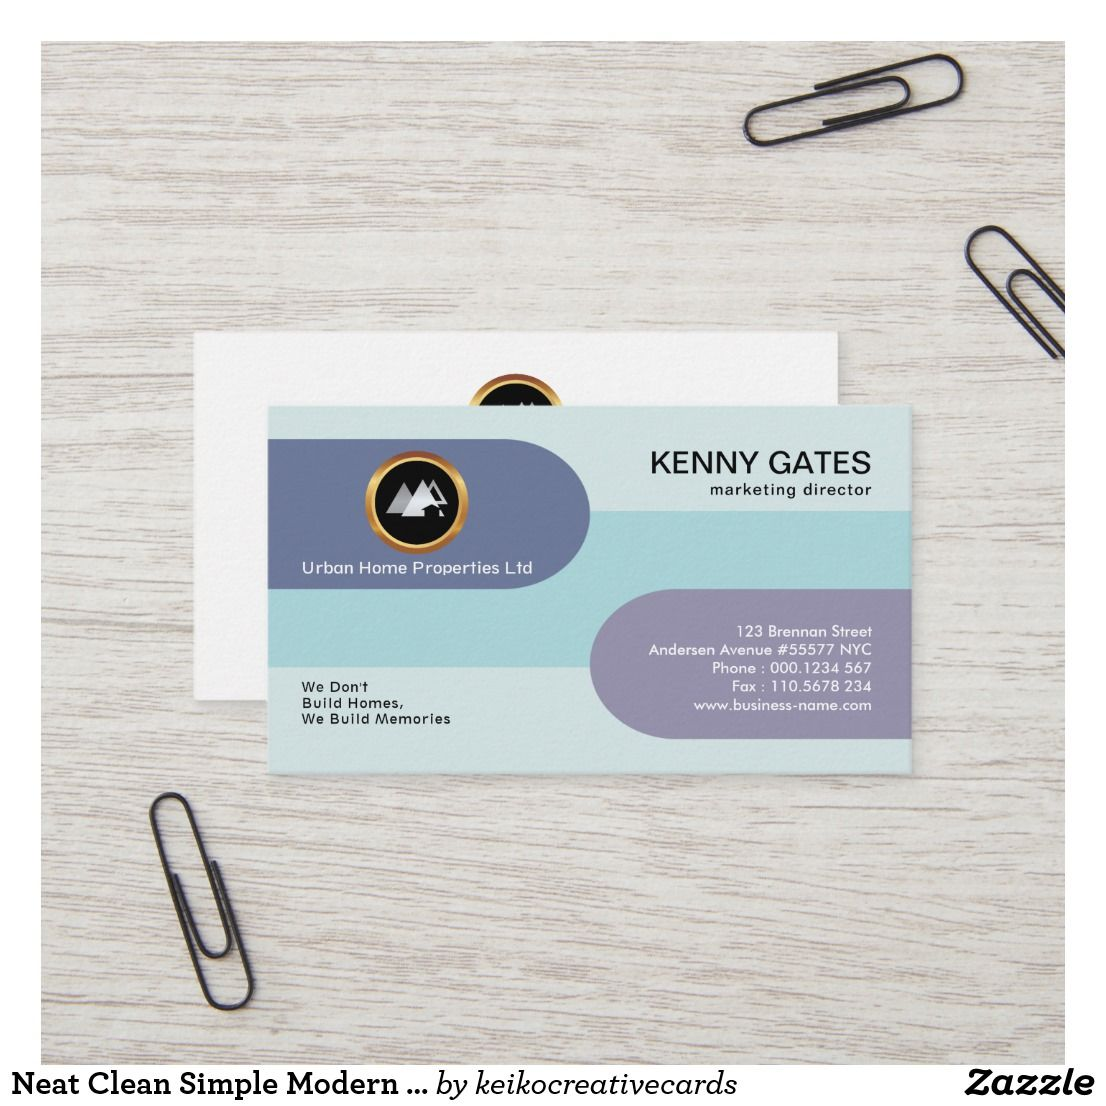 Neat Clean Simple Modern Creative Sales Marketing Business Card